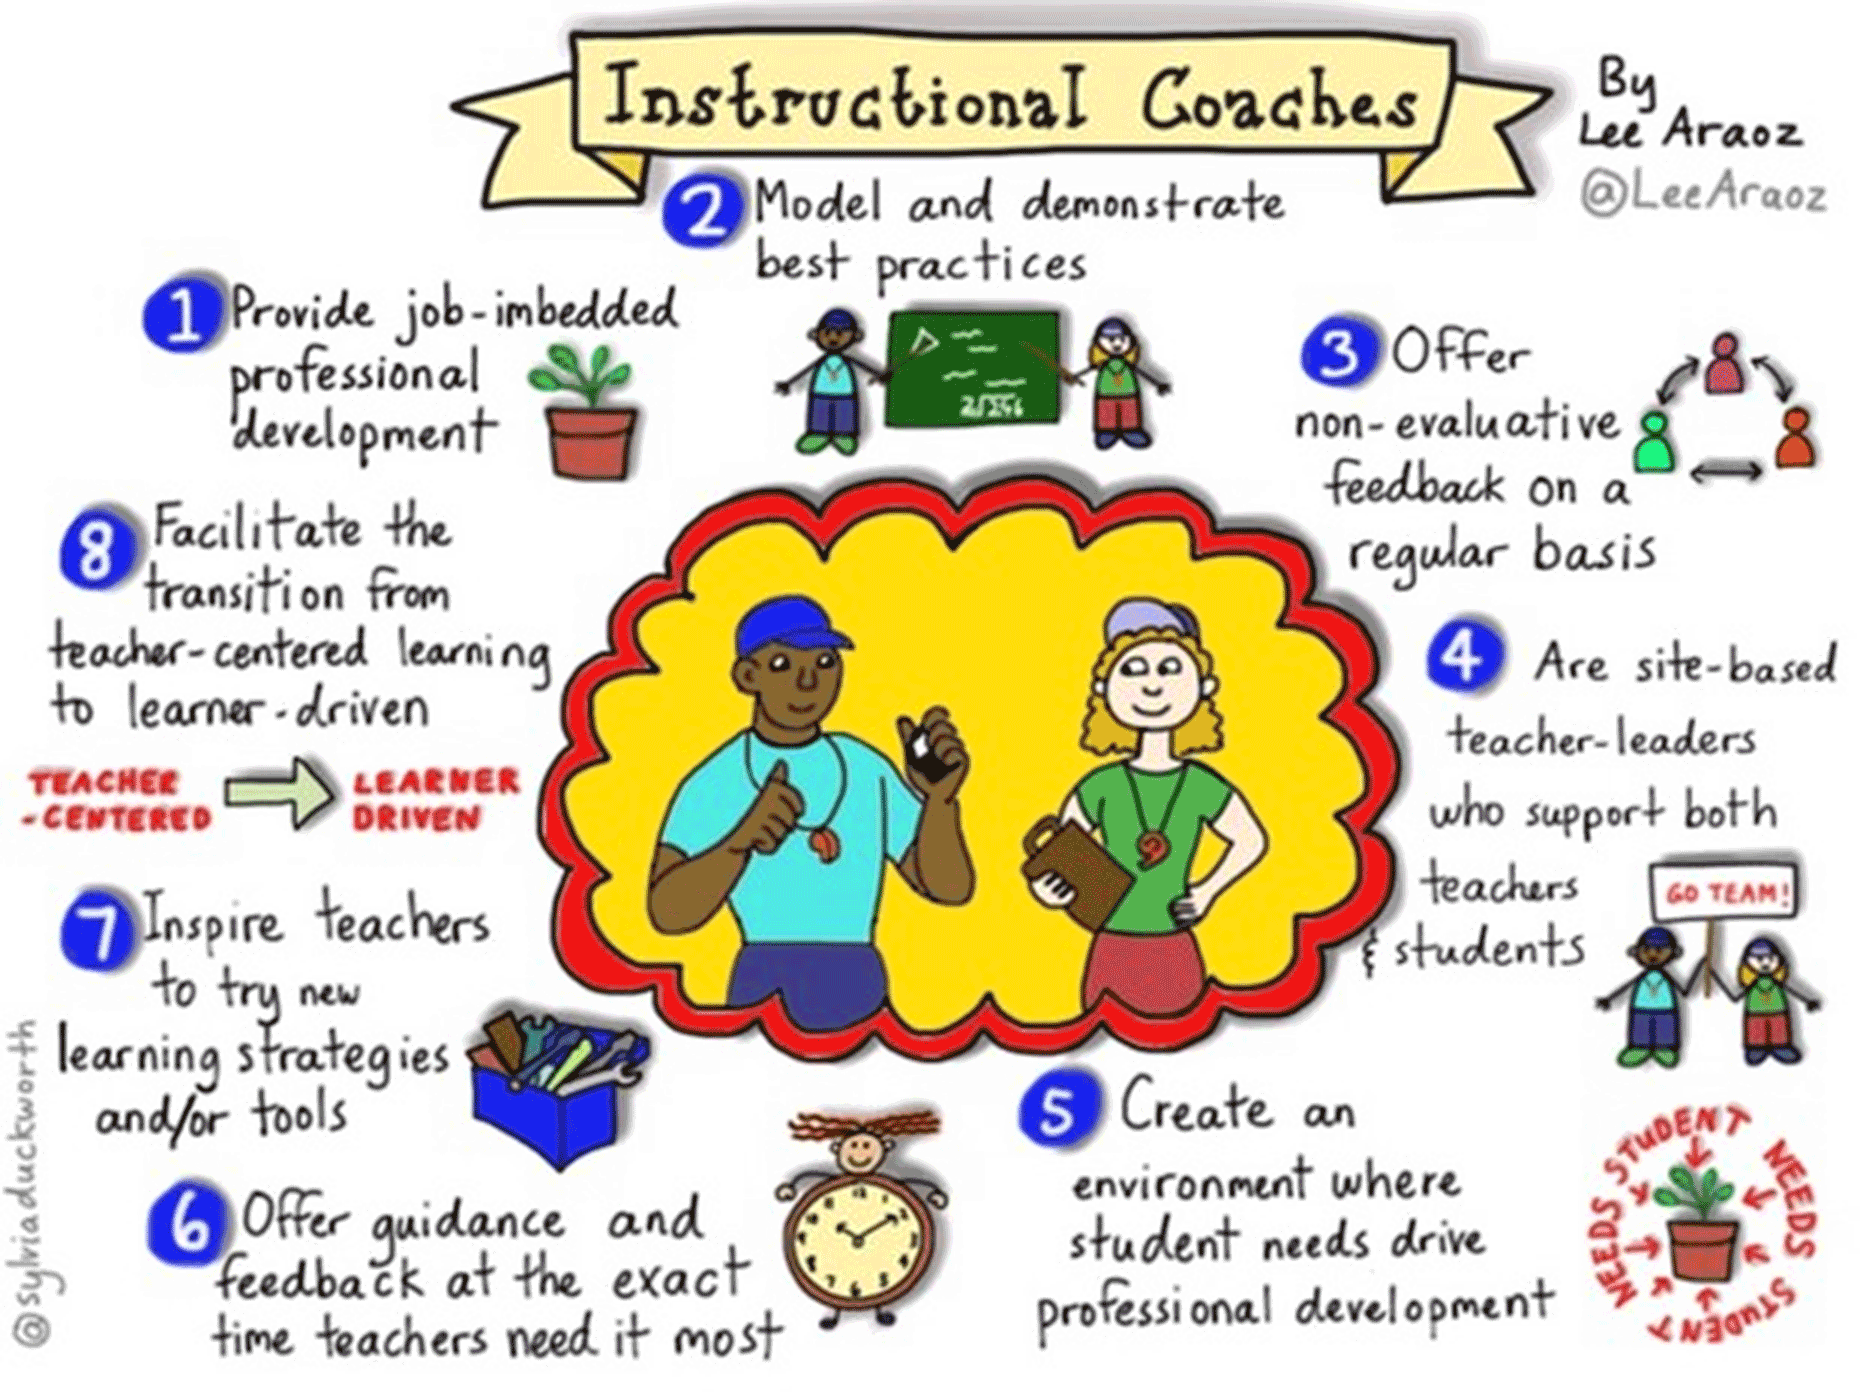 Instructional Coach Methodology